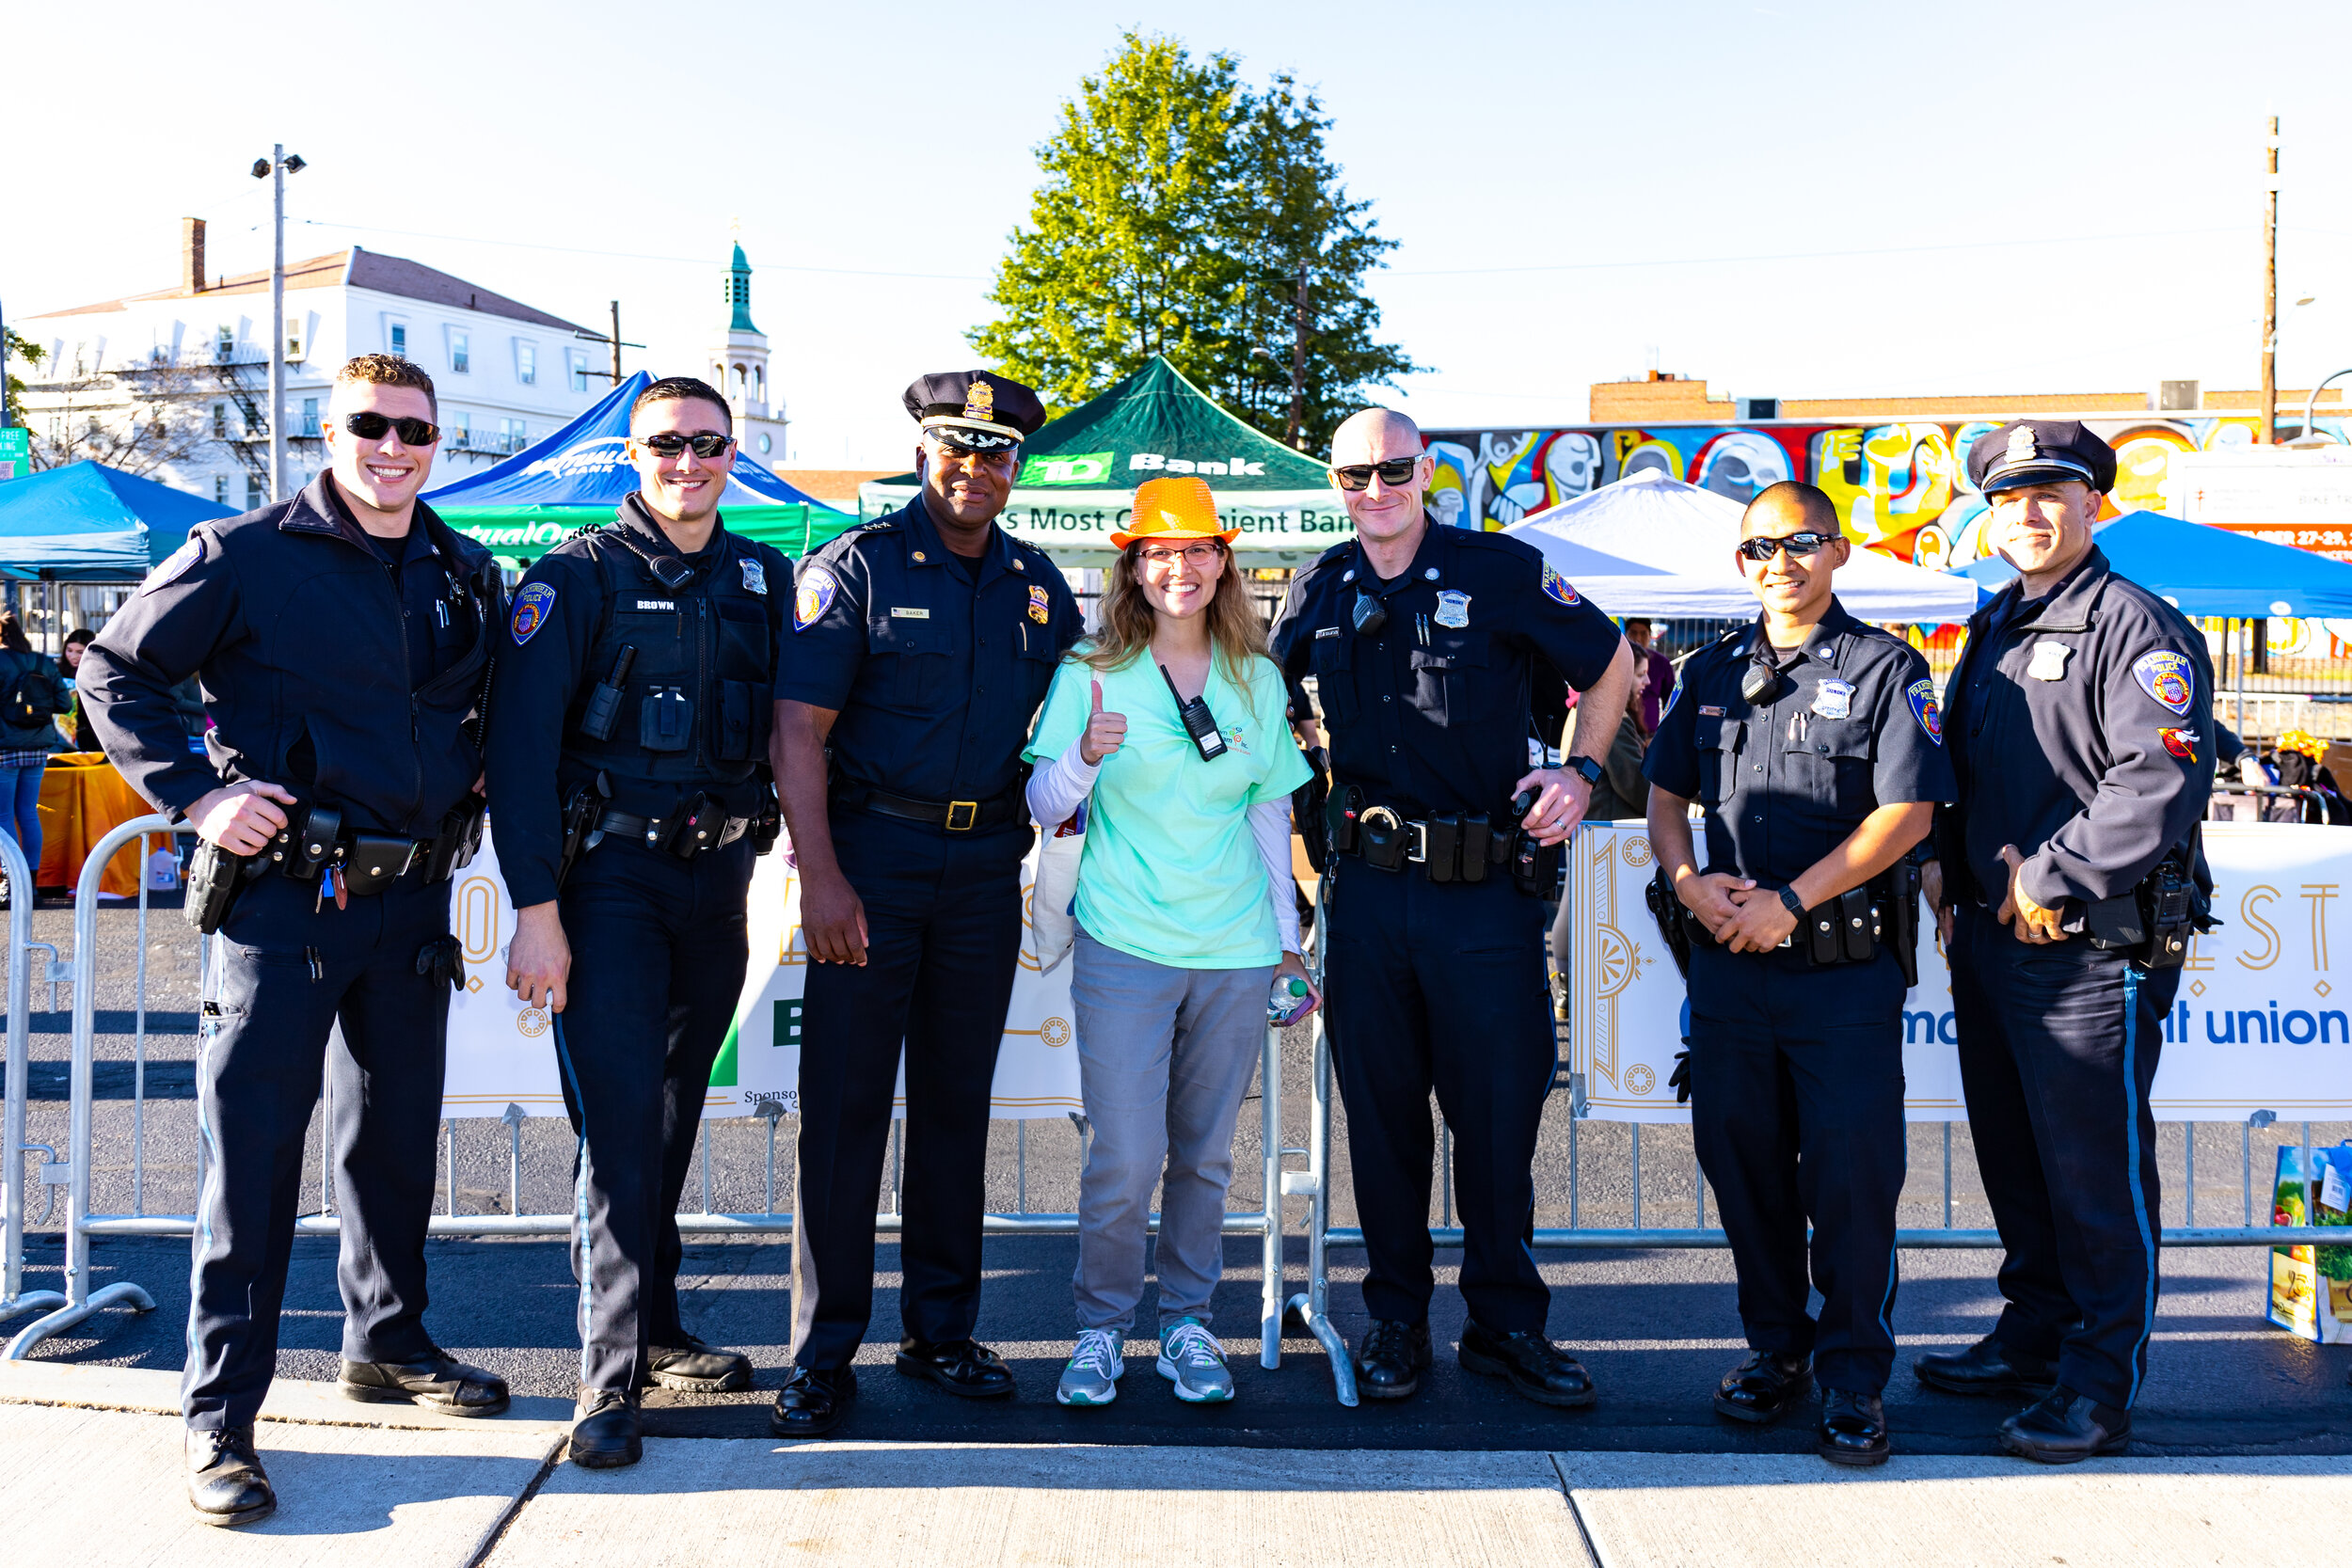 Framingham Police Department Deputy Chief Lester Baker (third from left), smiles as he leads his officers, including Downtown Beat Officer, Paul Dunkin (far right), at the Downtown Oktoberfest on October 5, organized by Downtown Framingham, Inc.'s Executive Director, Courtney Thraen (center).